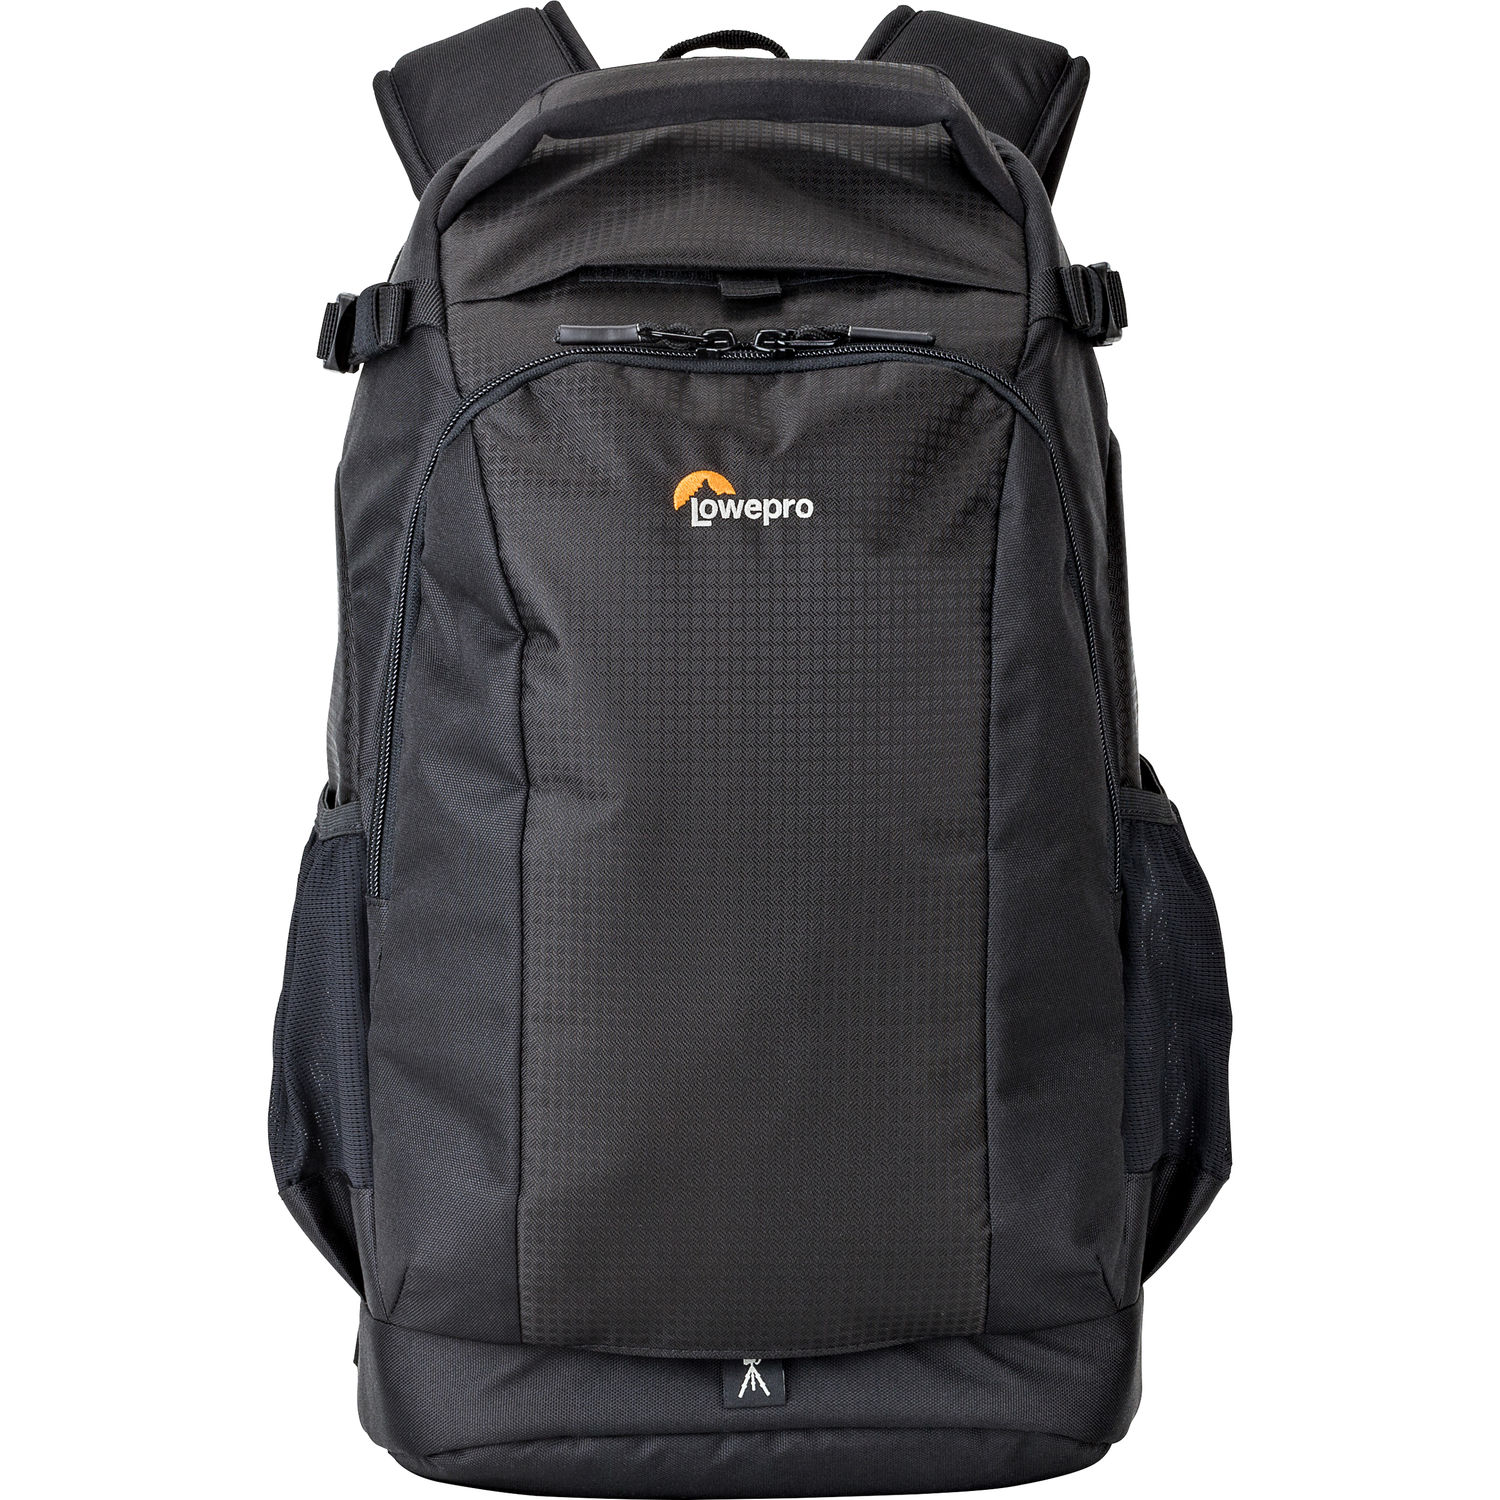 Lowepro Flipside 300 AW II Backpack - Black